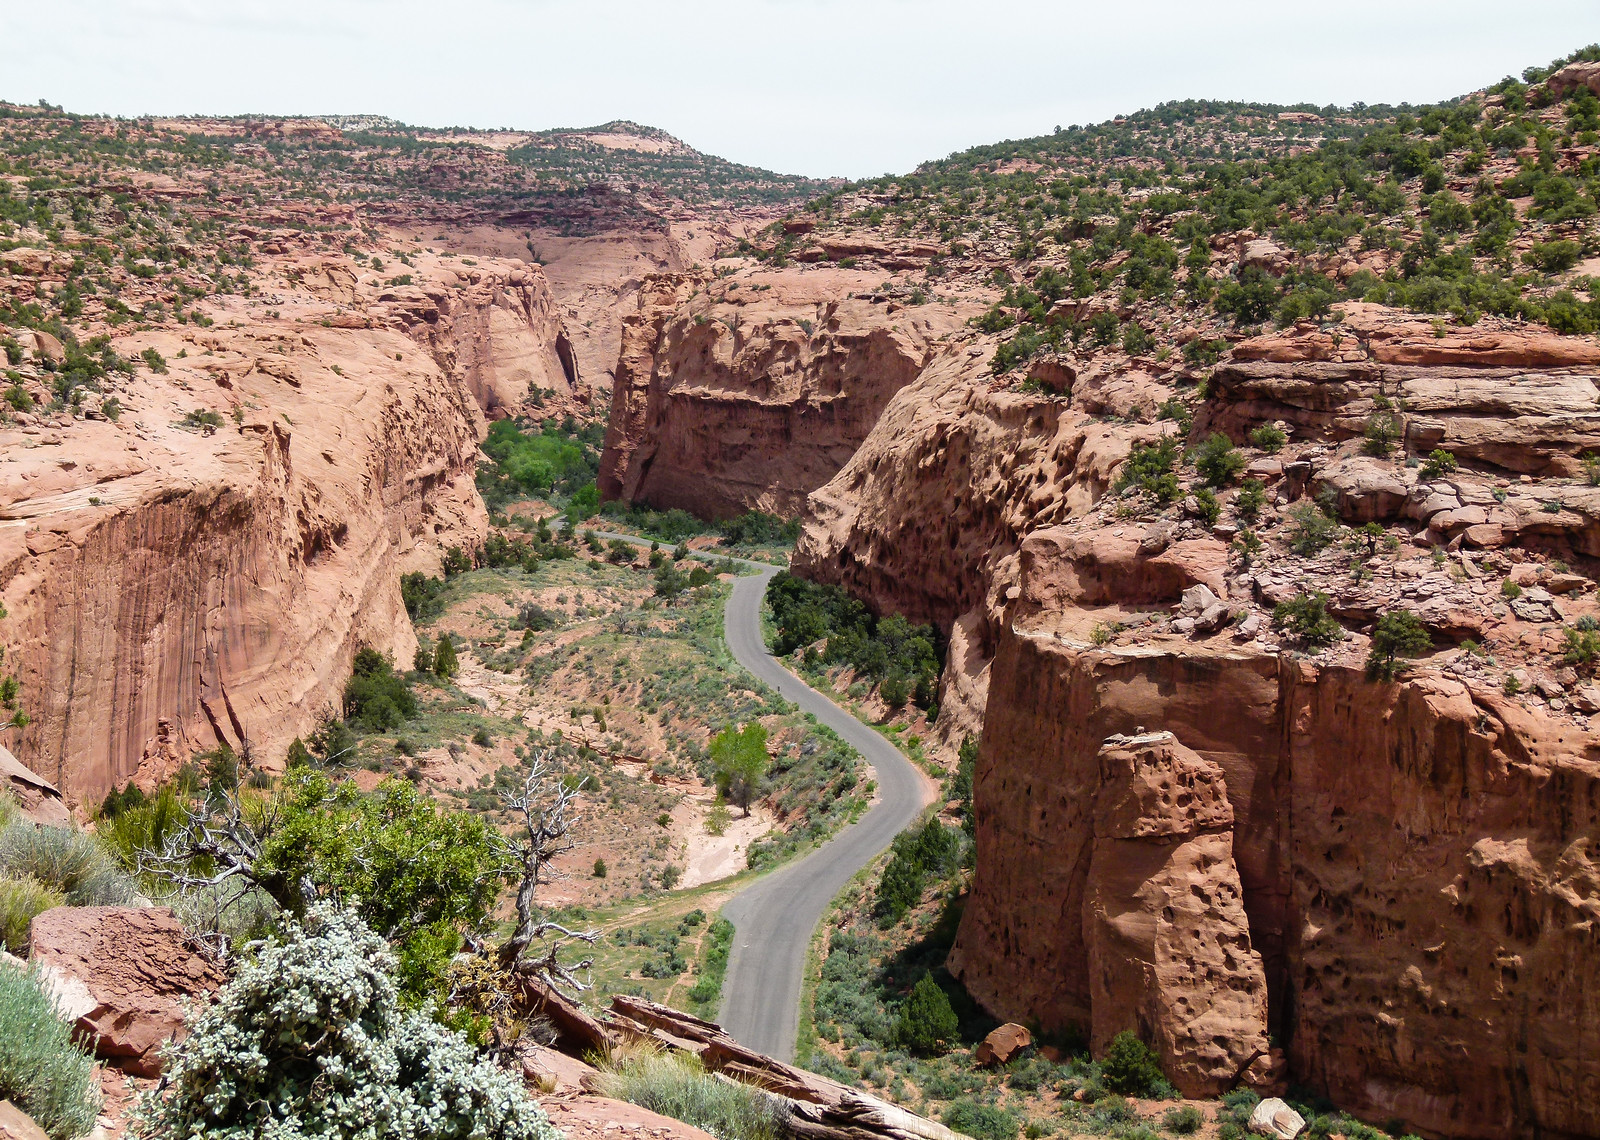 The gray pavement of Burr Trail travels through the pink walls of Long Canyon on a scenic drive in southern Utah.